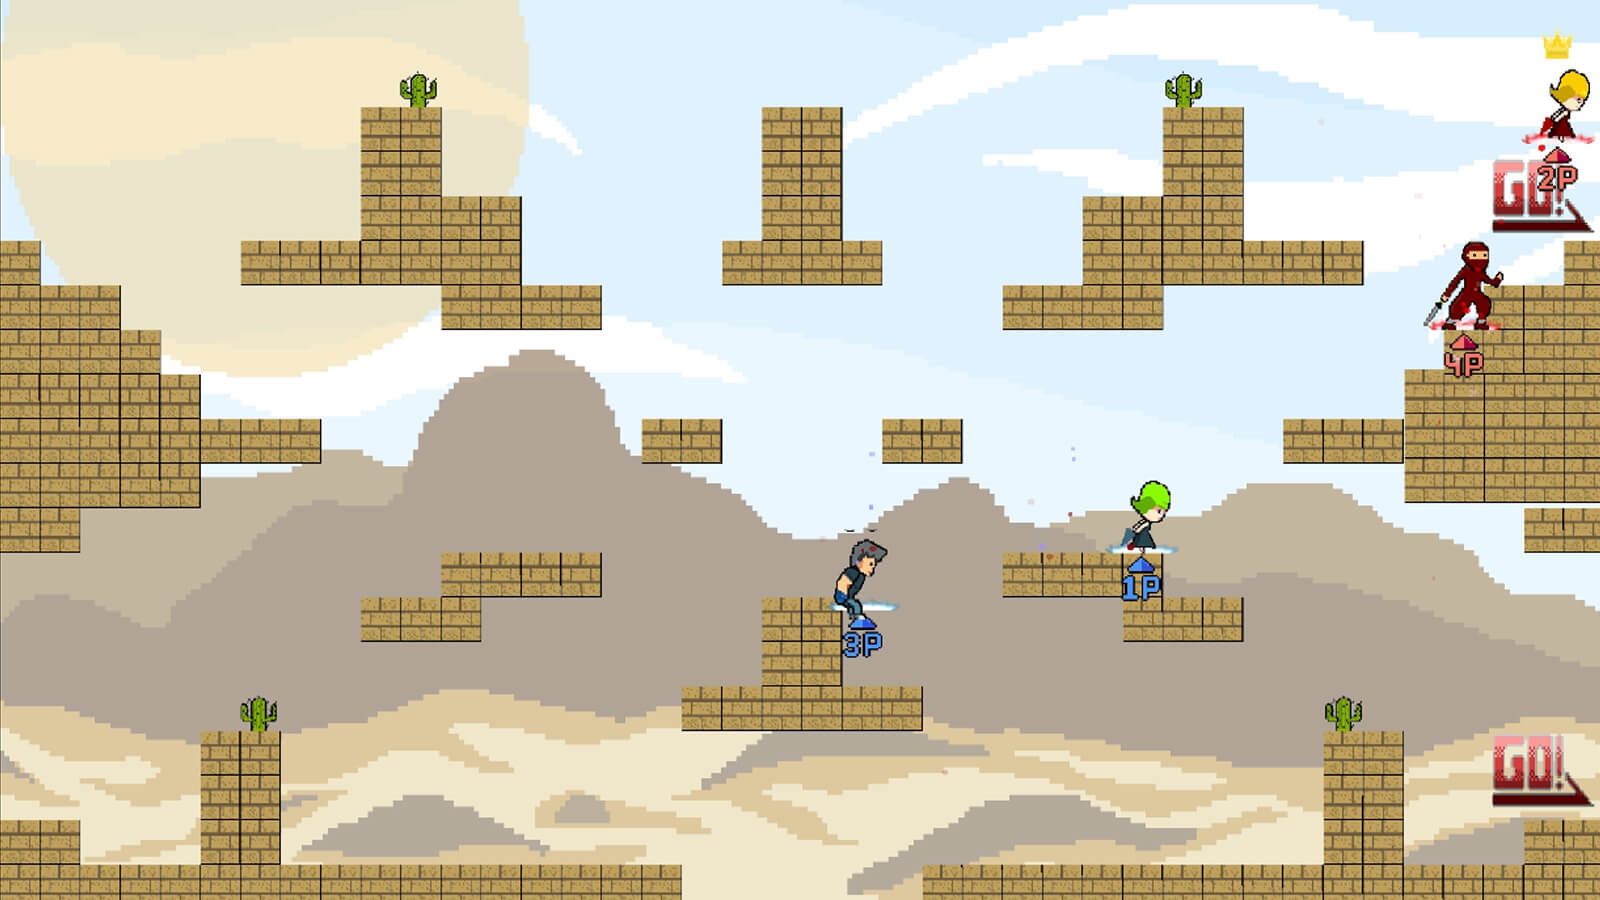 Four players jump around sandstone-brick platforms on a level with a desert background